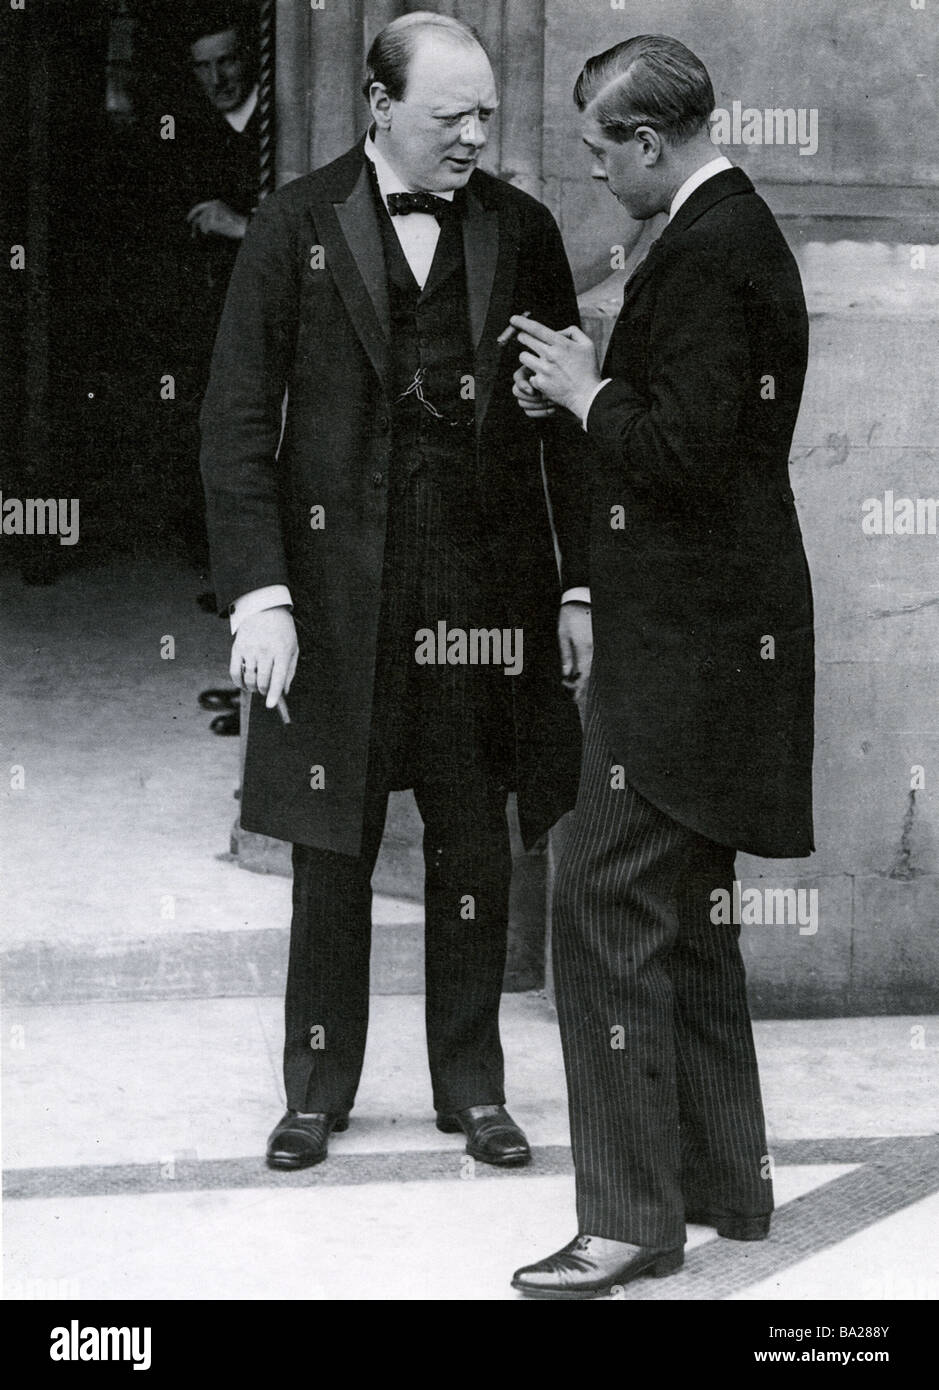 WINSTON CHURCHILL with the Prince of Wales at the House of Commons in 1919 - Stock Image